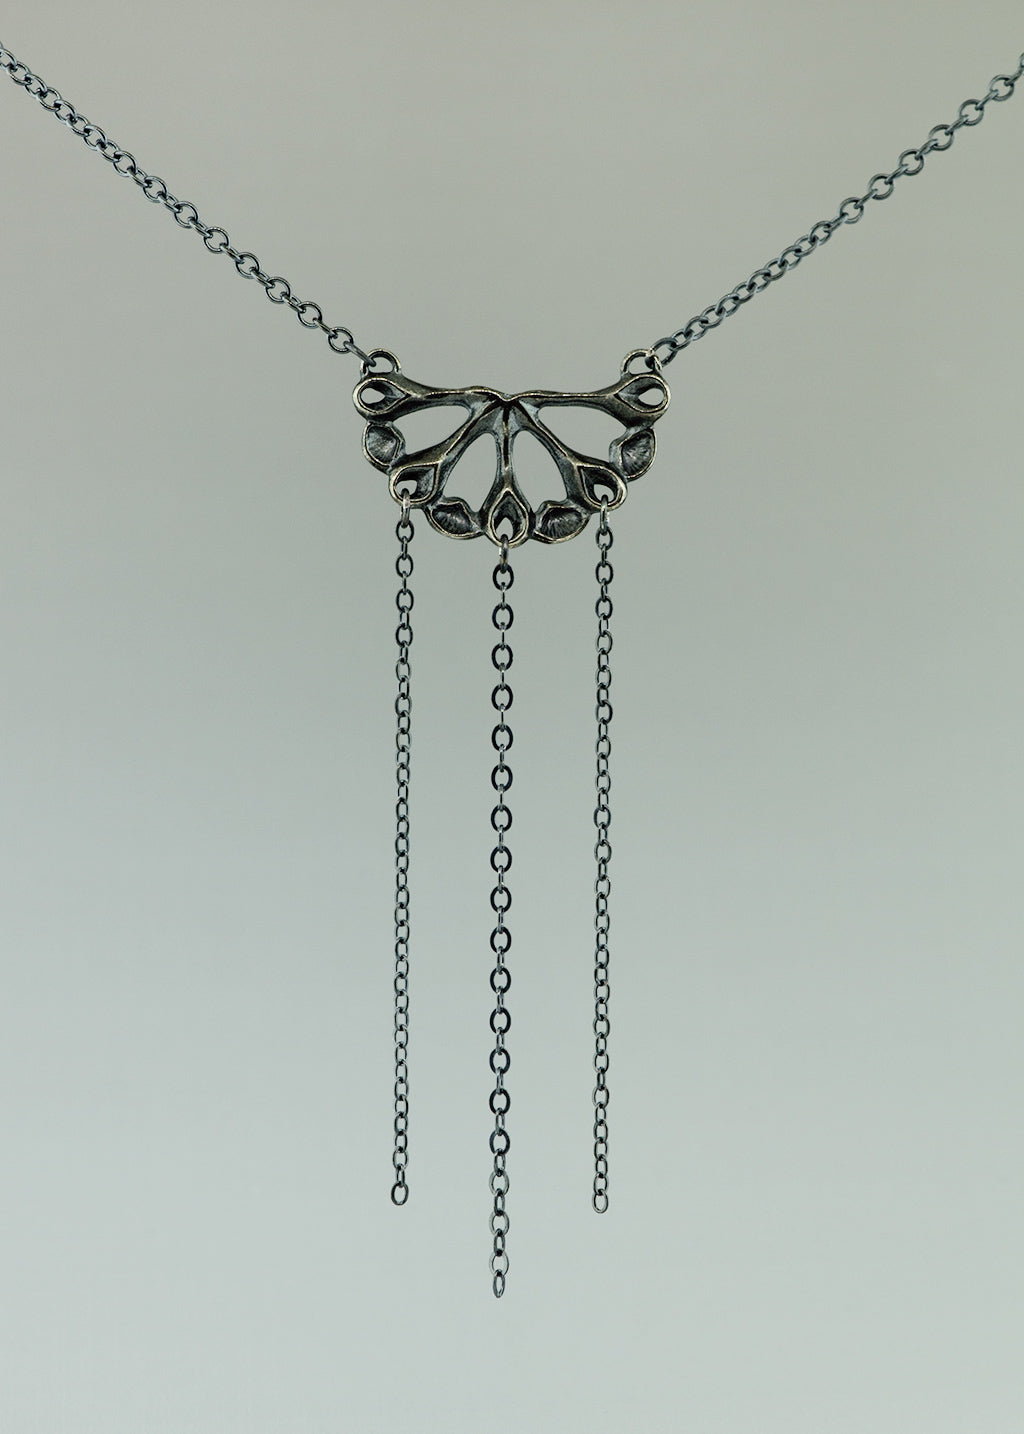 Semi Siren Pendant with chain Necklace